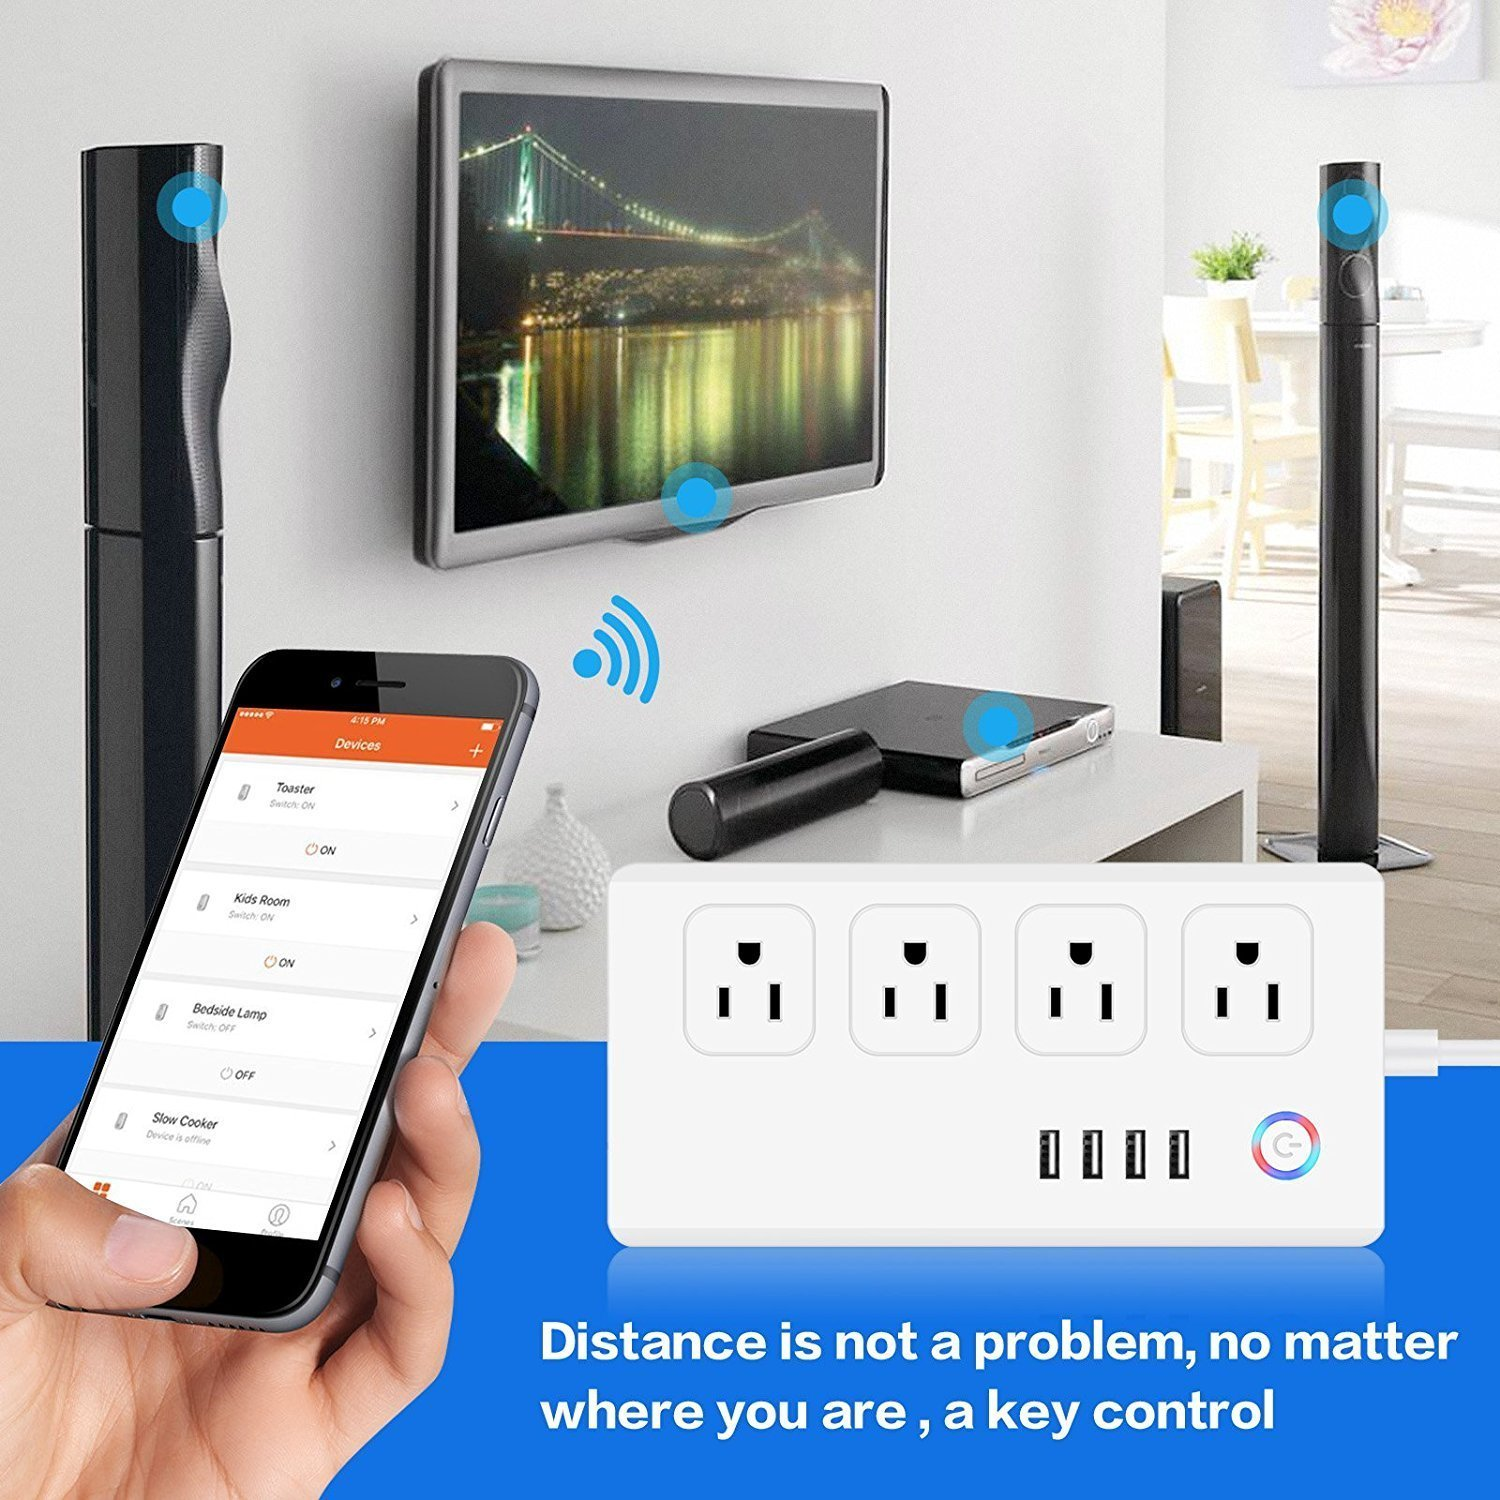 Power Strip Socket DIWUER WiFi Smart Multi Outlets with 4 Plug 4 USB Ports Work with Amazon Alexa Surge Protector Timer Remote Control by iPhone and Android Phone by DIWUER (Image #3)